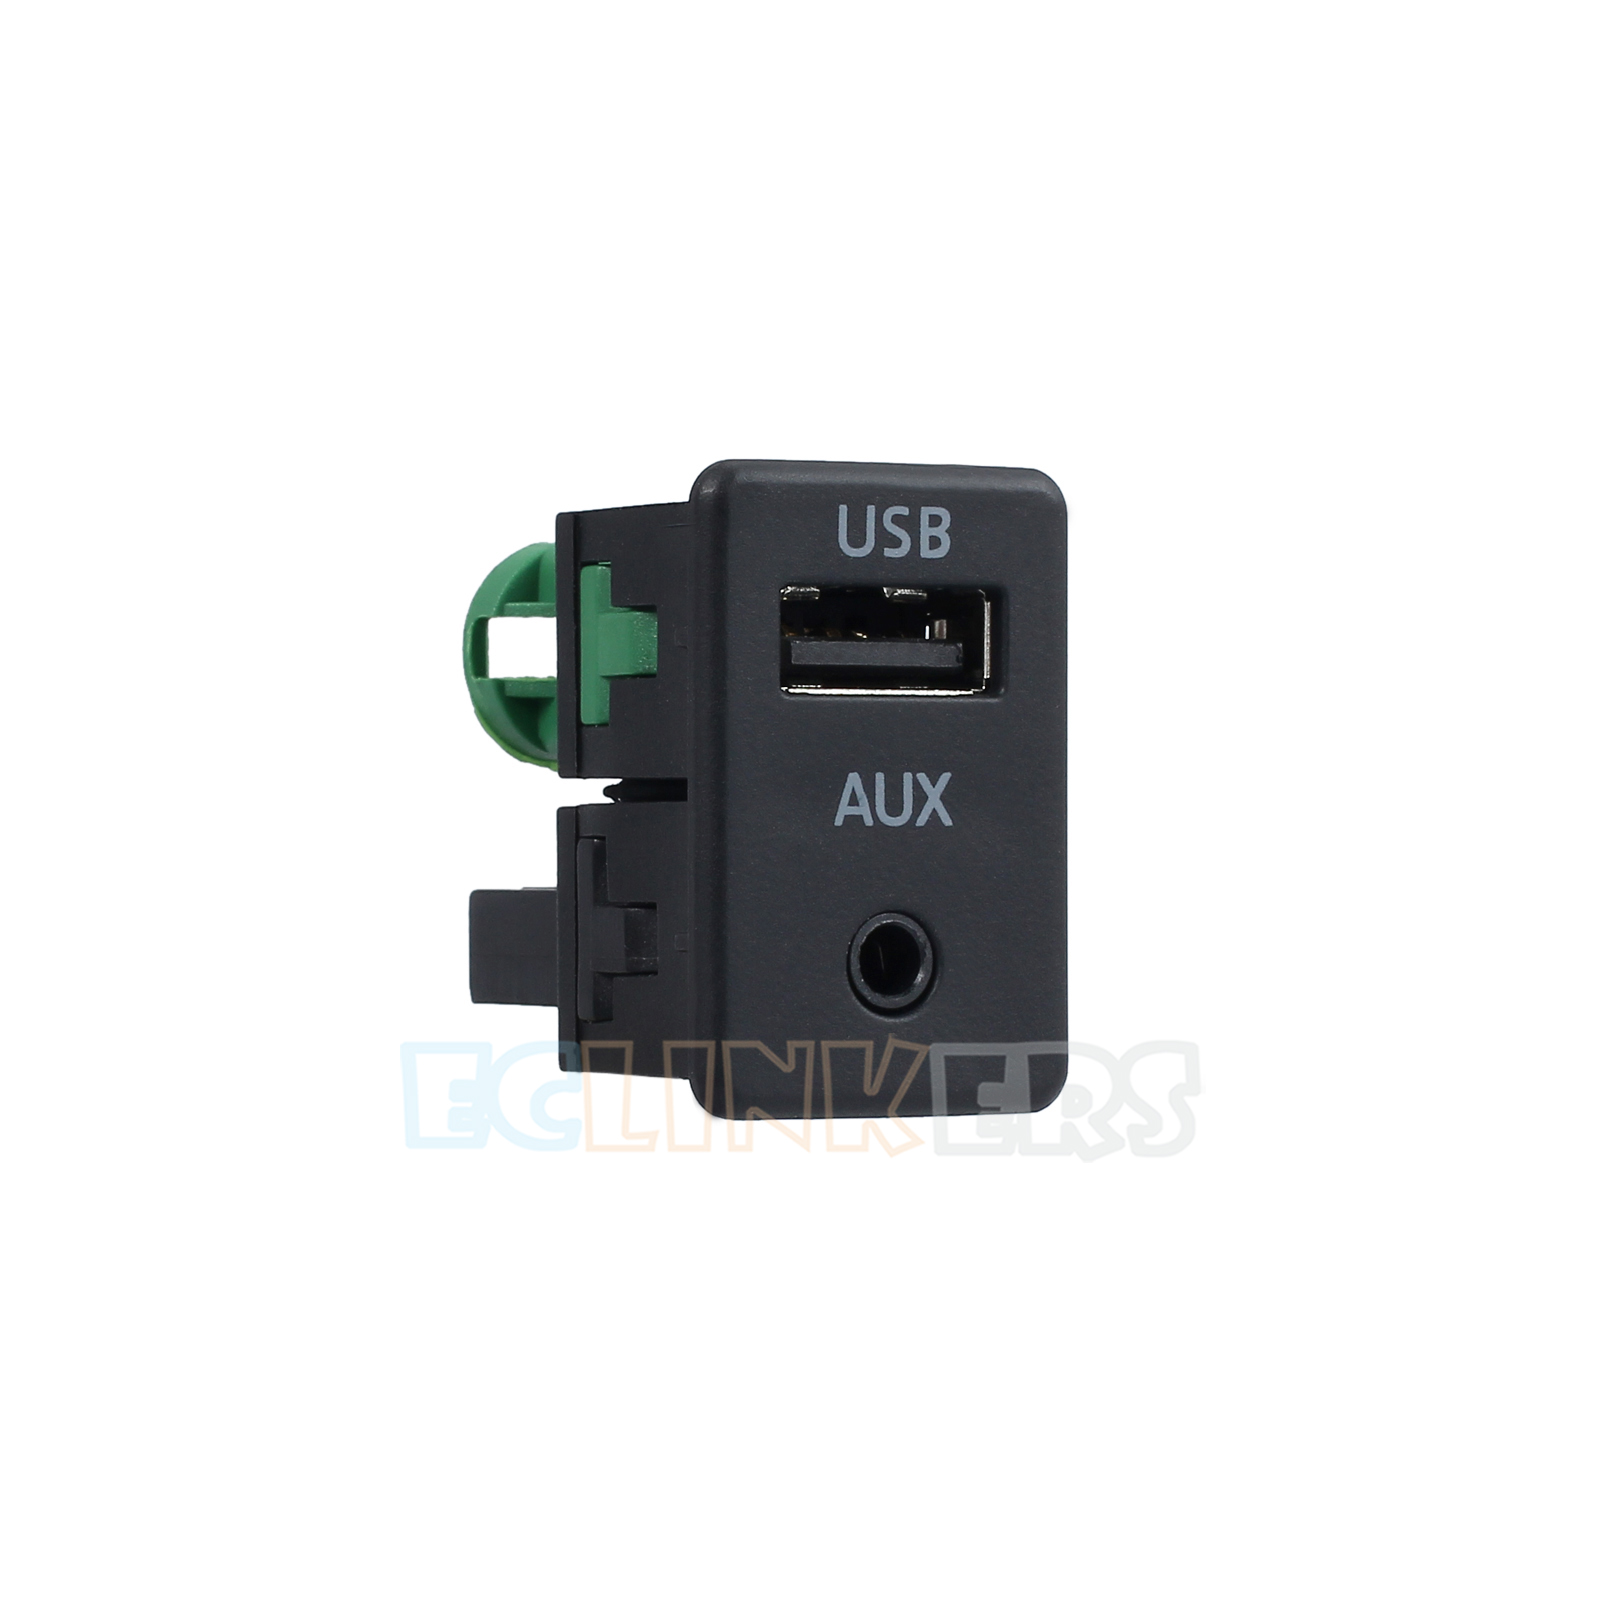 Usb Aux Switch Socket Cable Adapter For Bmw 3 5 Series E87 E90 91 92 X5 X6 Ac516 Ebay